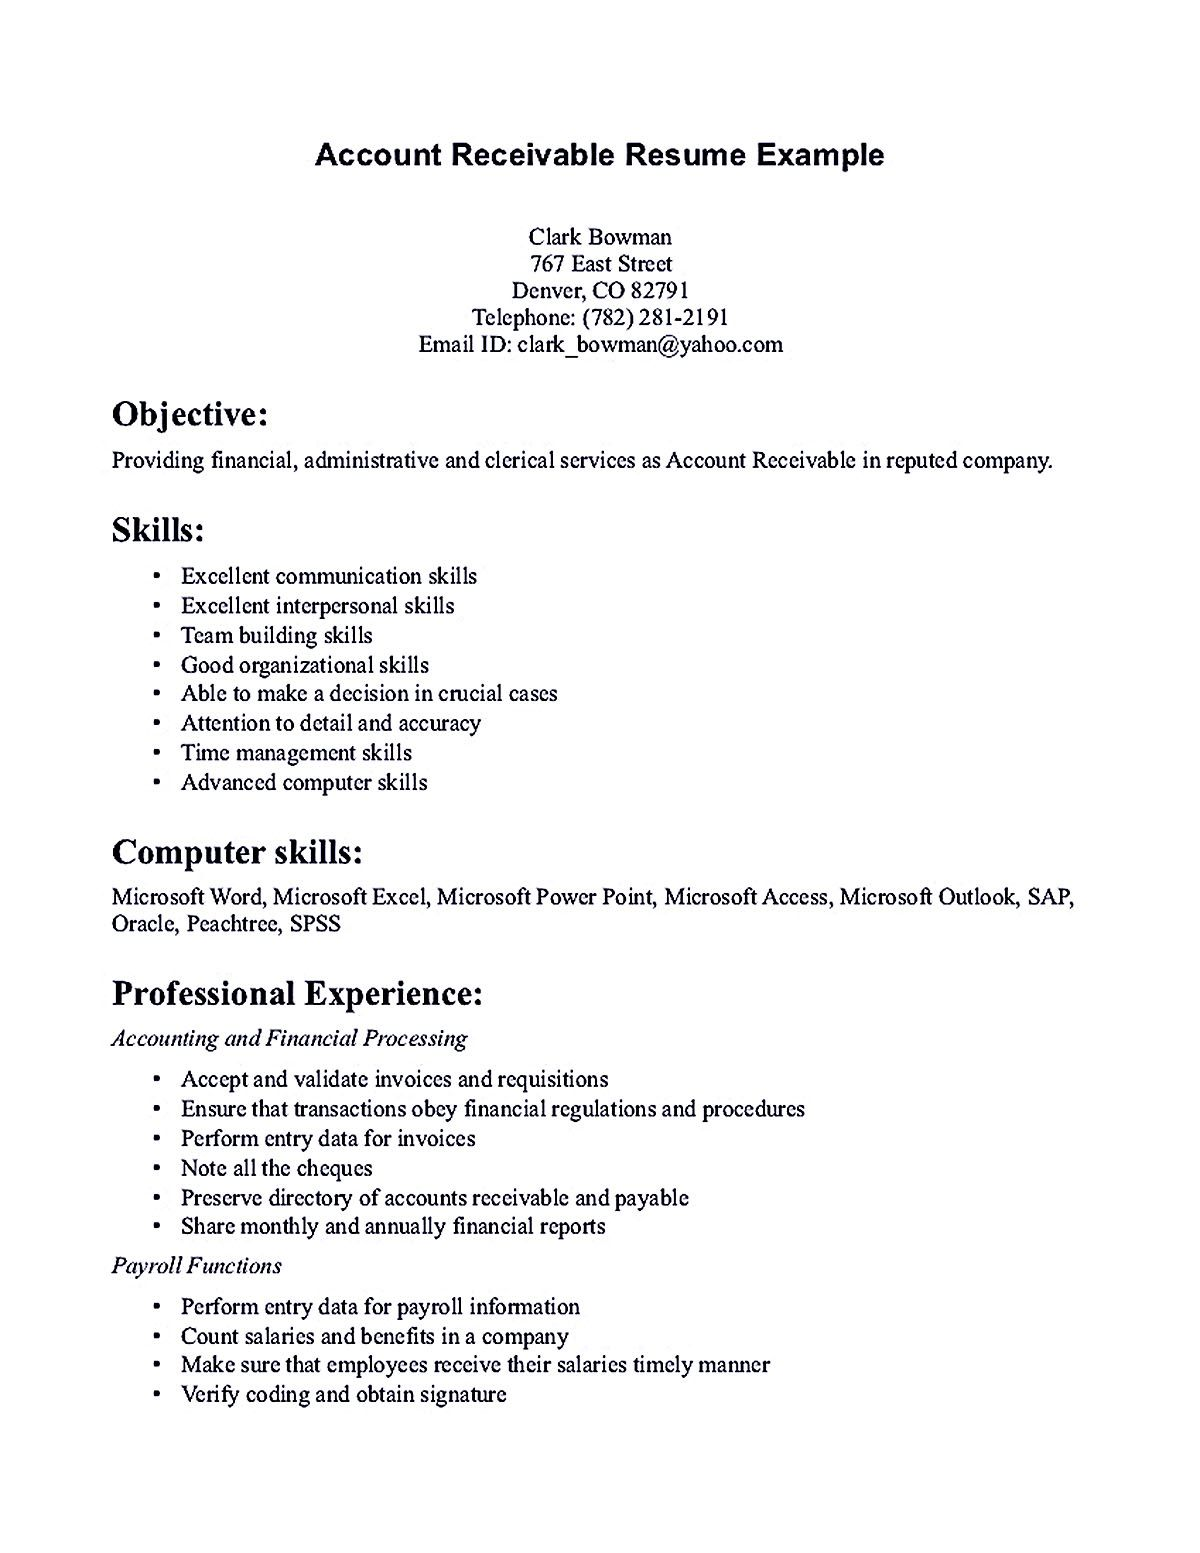 Professional Summary Resume New Account Receivable Resume Shows Both Technical And Interpersonal Design Decoration